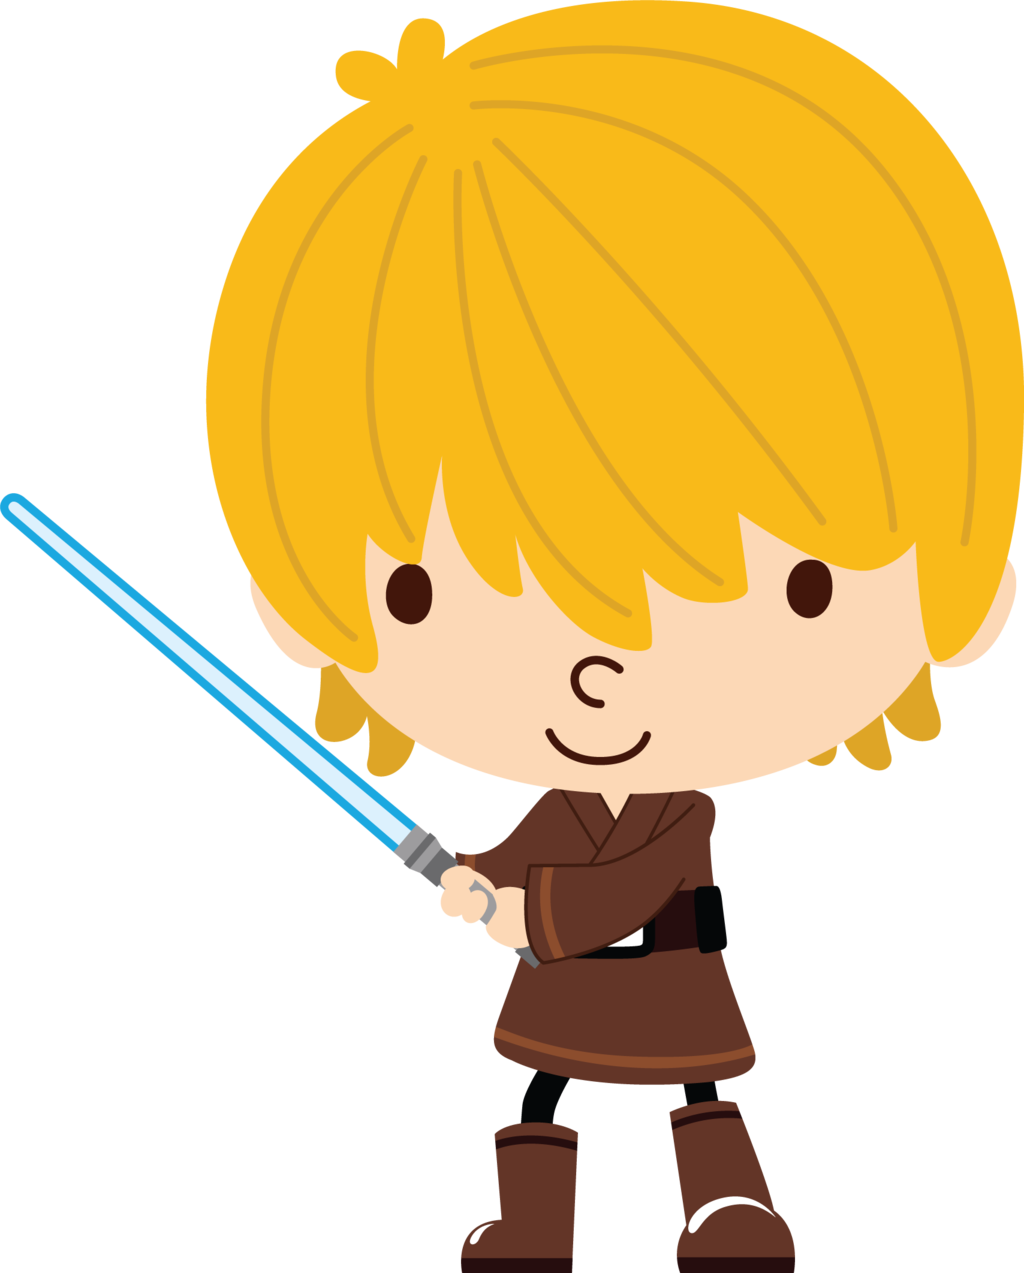 Luke Skywalker clipart tatooine By by Chrispix326 Art Luke